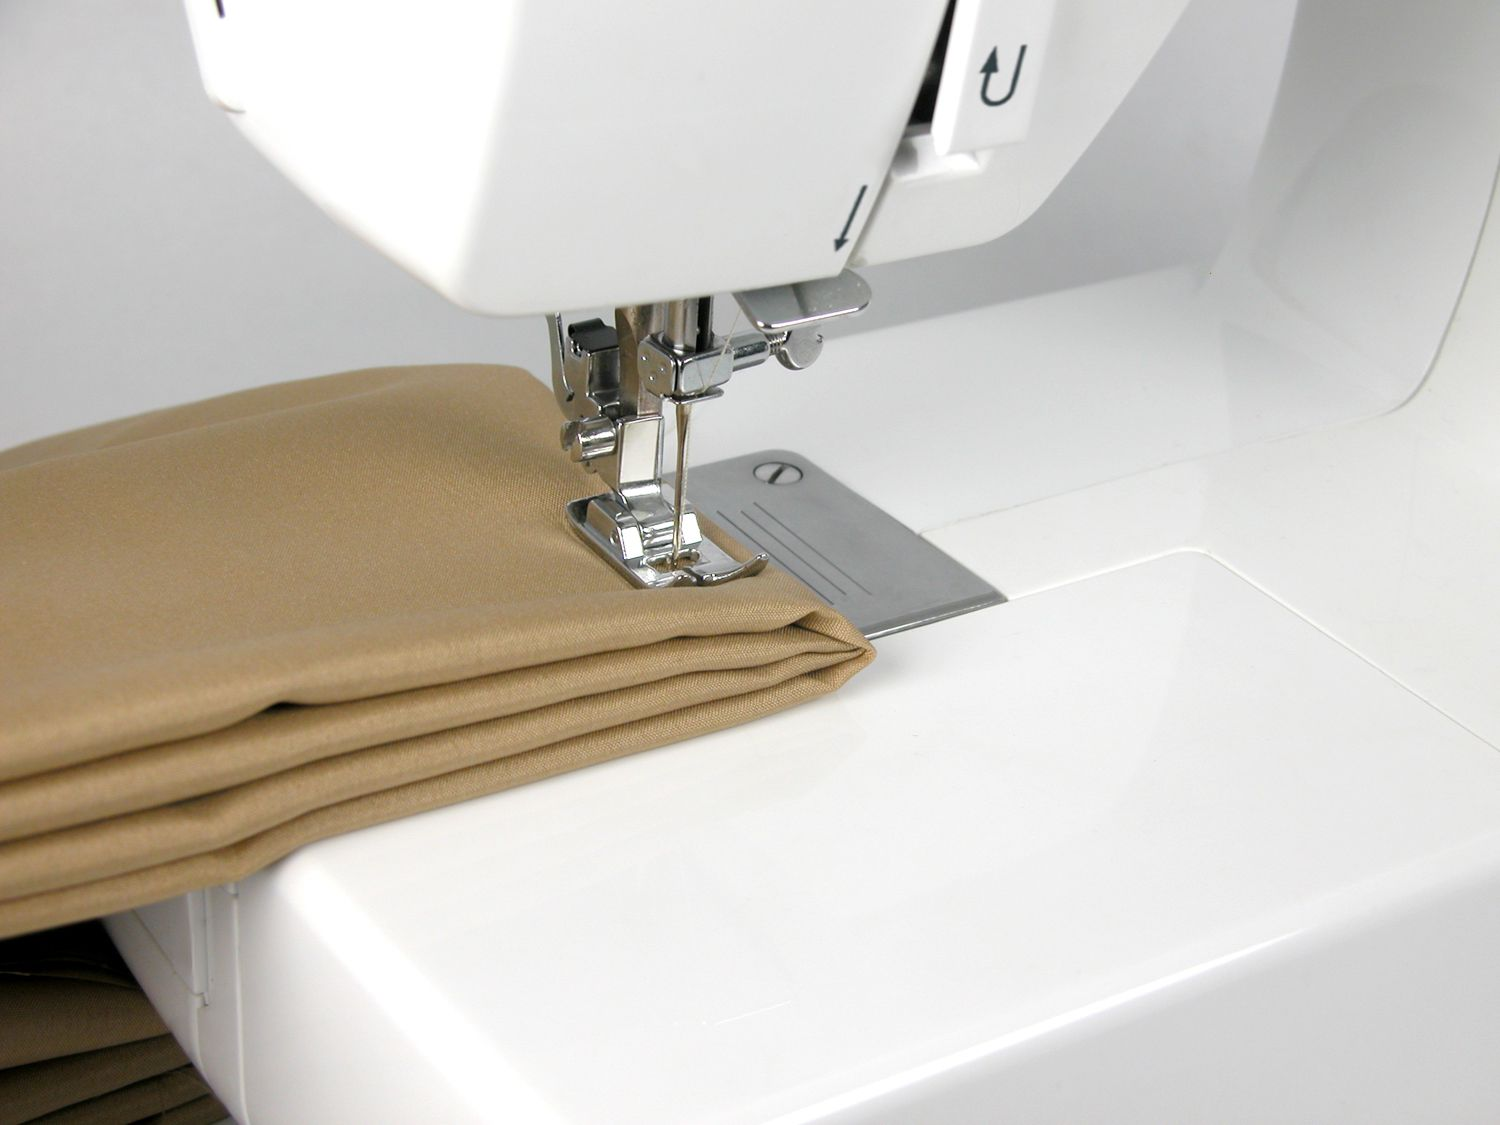 sew-through-heavy-fabrics